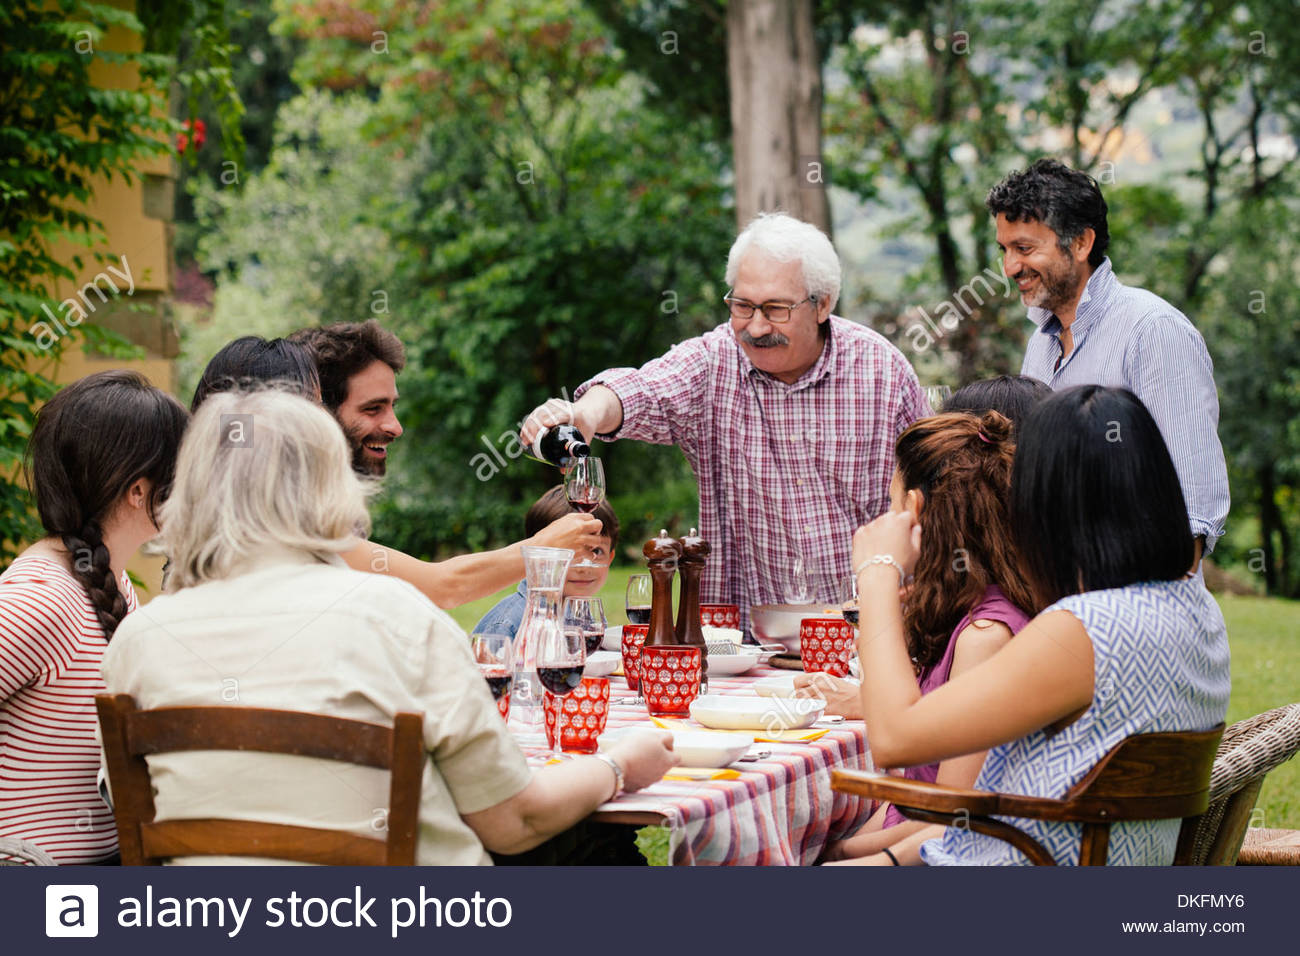 Senior man pouring wine at family meal - Stock Image